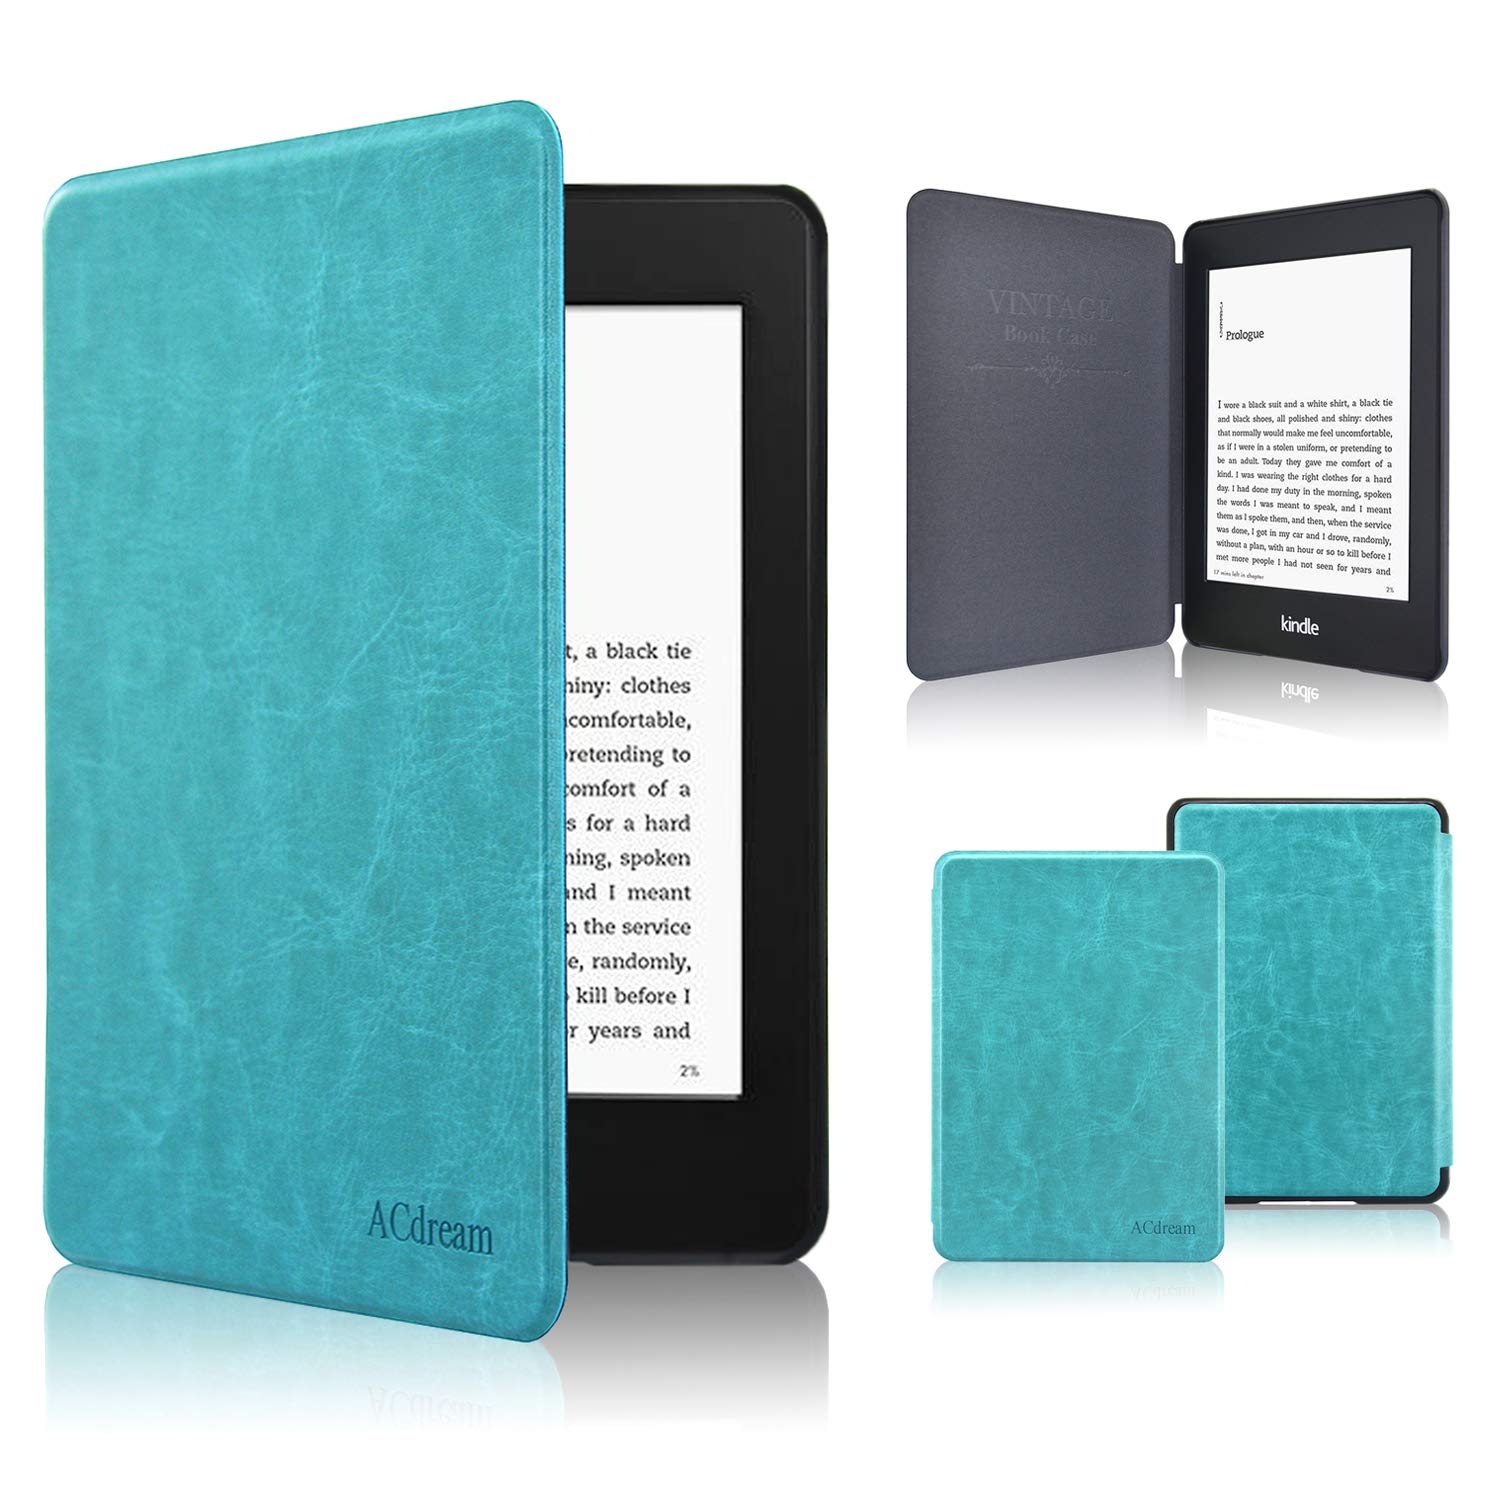 Kindle Paperwhite Case 2018, ACcolor The Thinnest and Lightest Leather Compatible All-New Kindle Paperwhite 10th Generation, (Only Fit KindlePaperwhite 10th Generation 2018, Sky Blue)